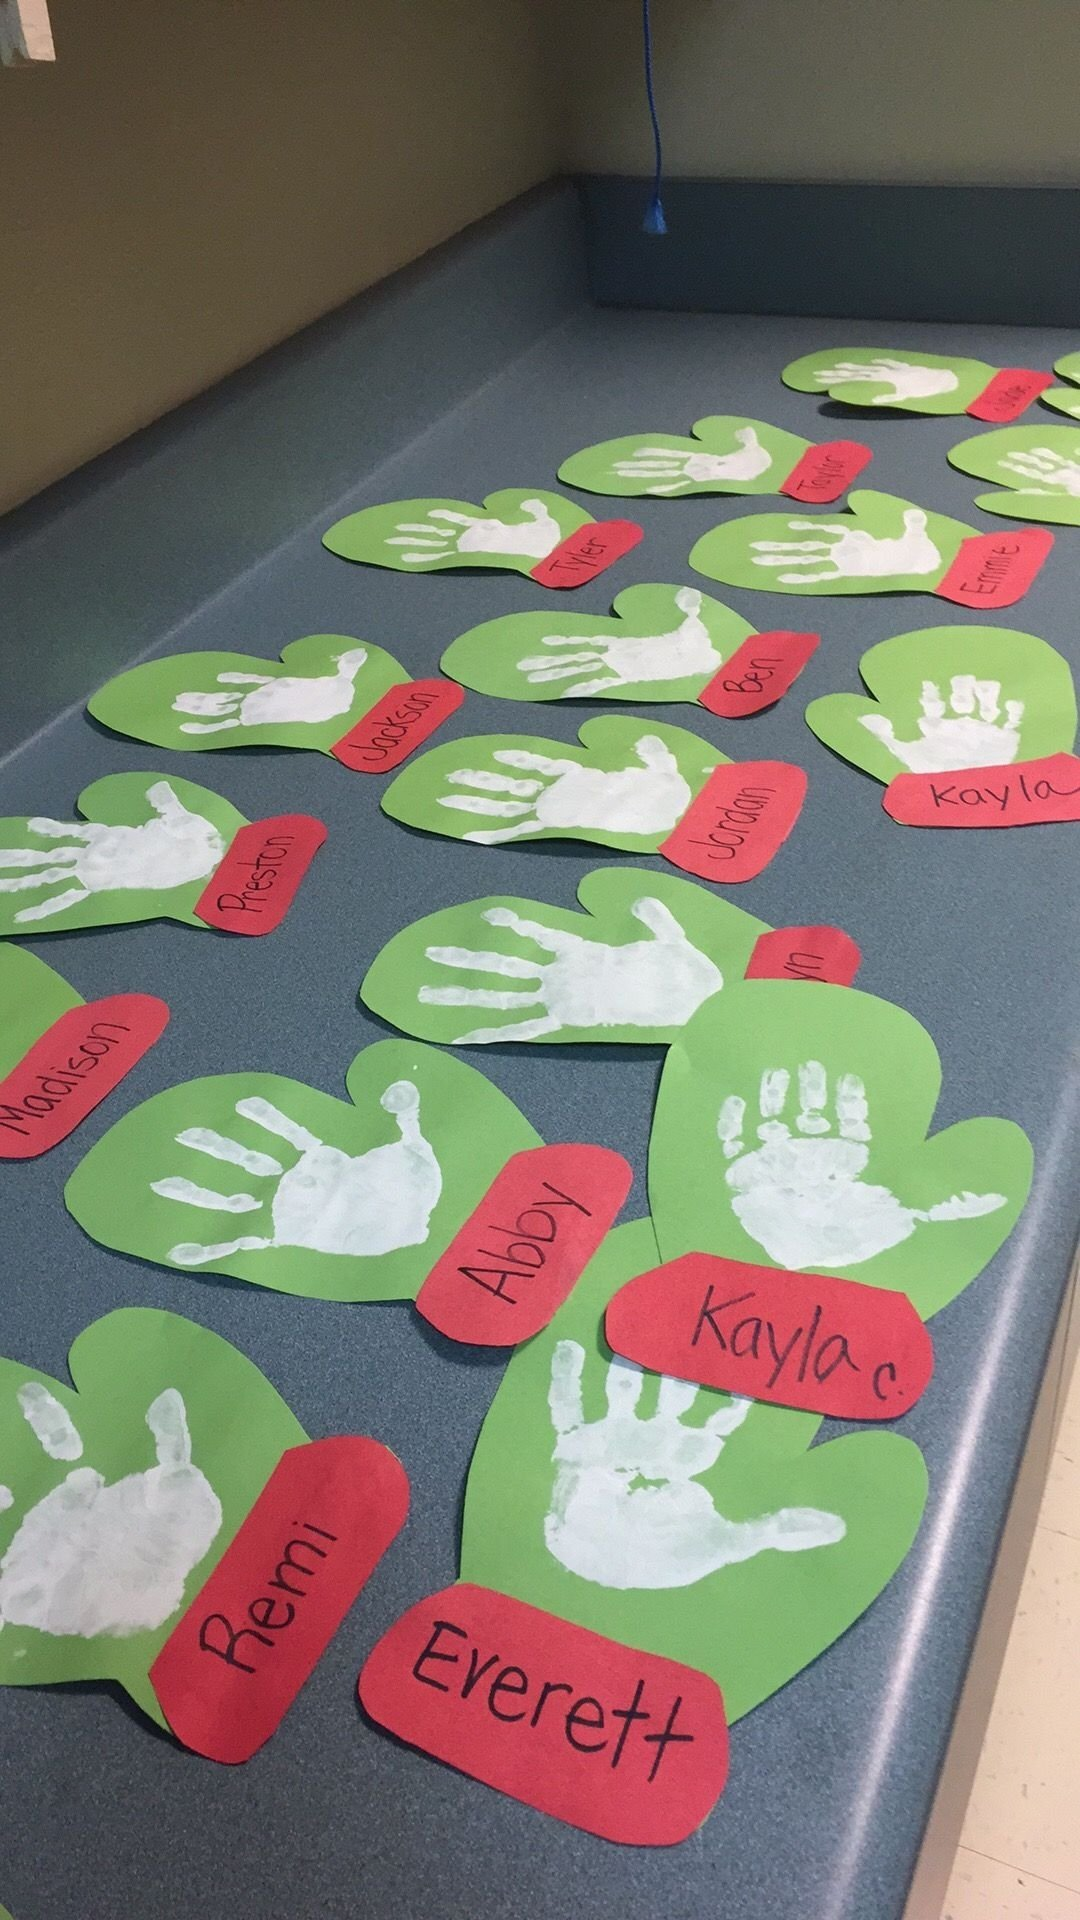 10 Nice Christmas Craft Ideas For Toddlers 23 cute and fun handprint and footprint crafts for kids the